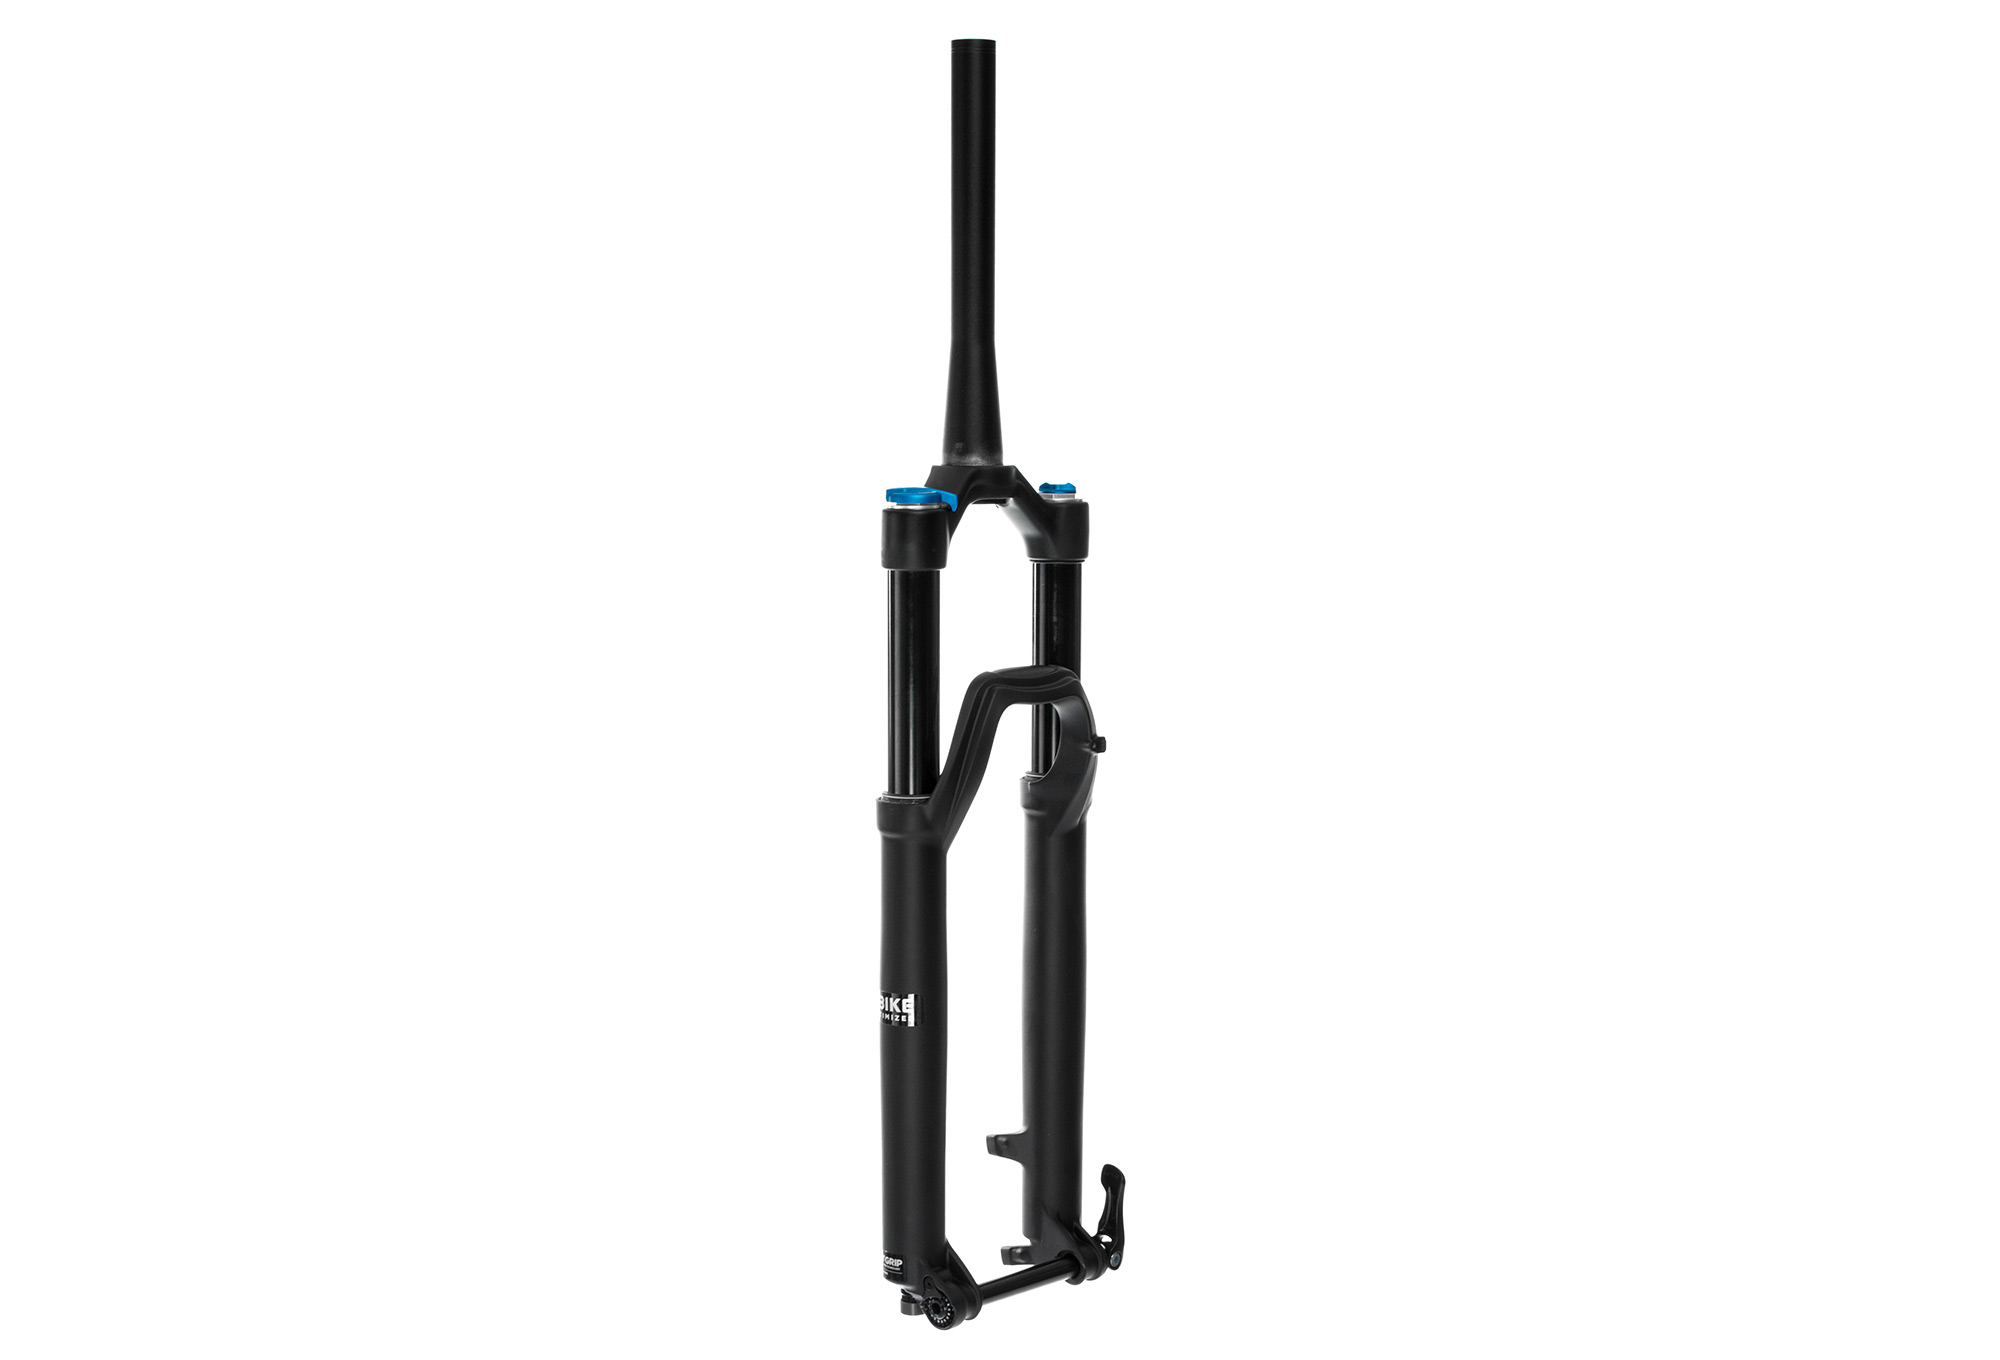 Fox Racing Shox 34 Float Performance 275 Speed Pedelec Fork Grip 15x100 Black 2018 Without Stickers